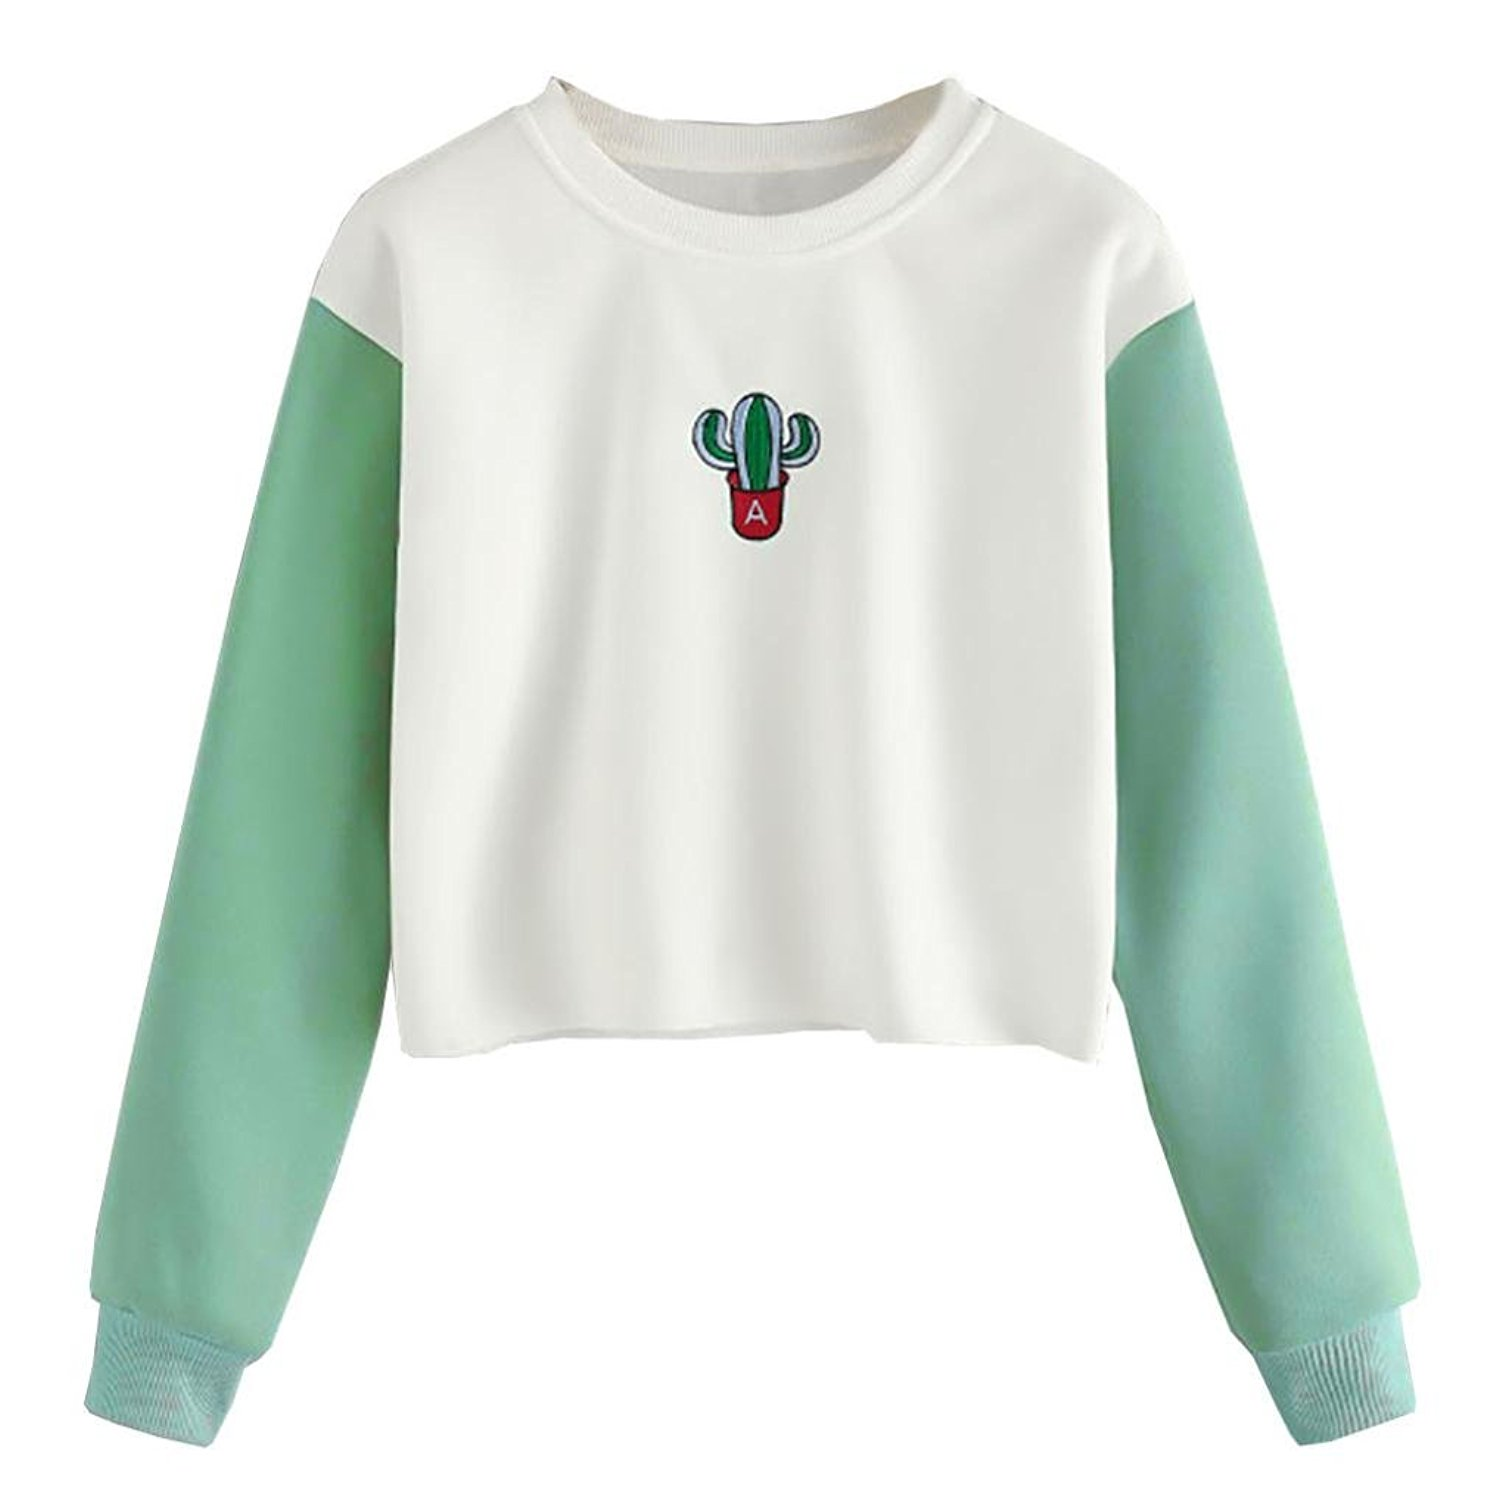 Junshion Womens Sweatshirt Botany Printed Long Sleeve Patchwork Suede Pullover Tops